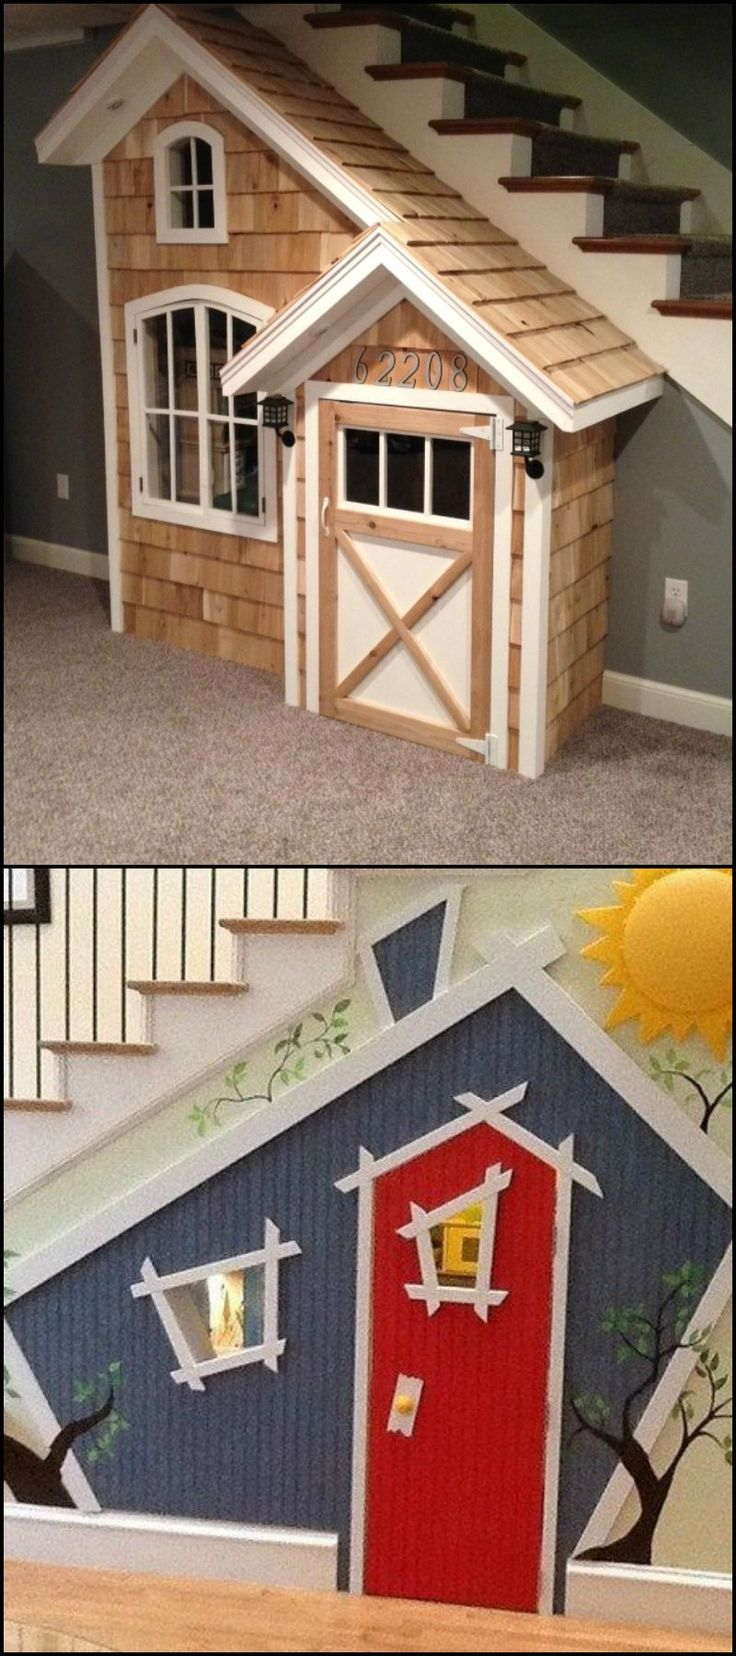 Best 25+ Indoor playhouse ideas on Pinterest | Kids indoor ...